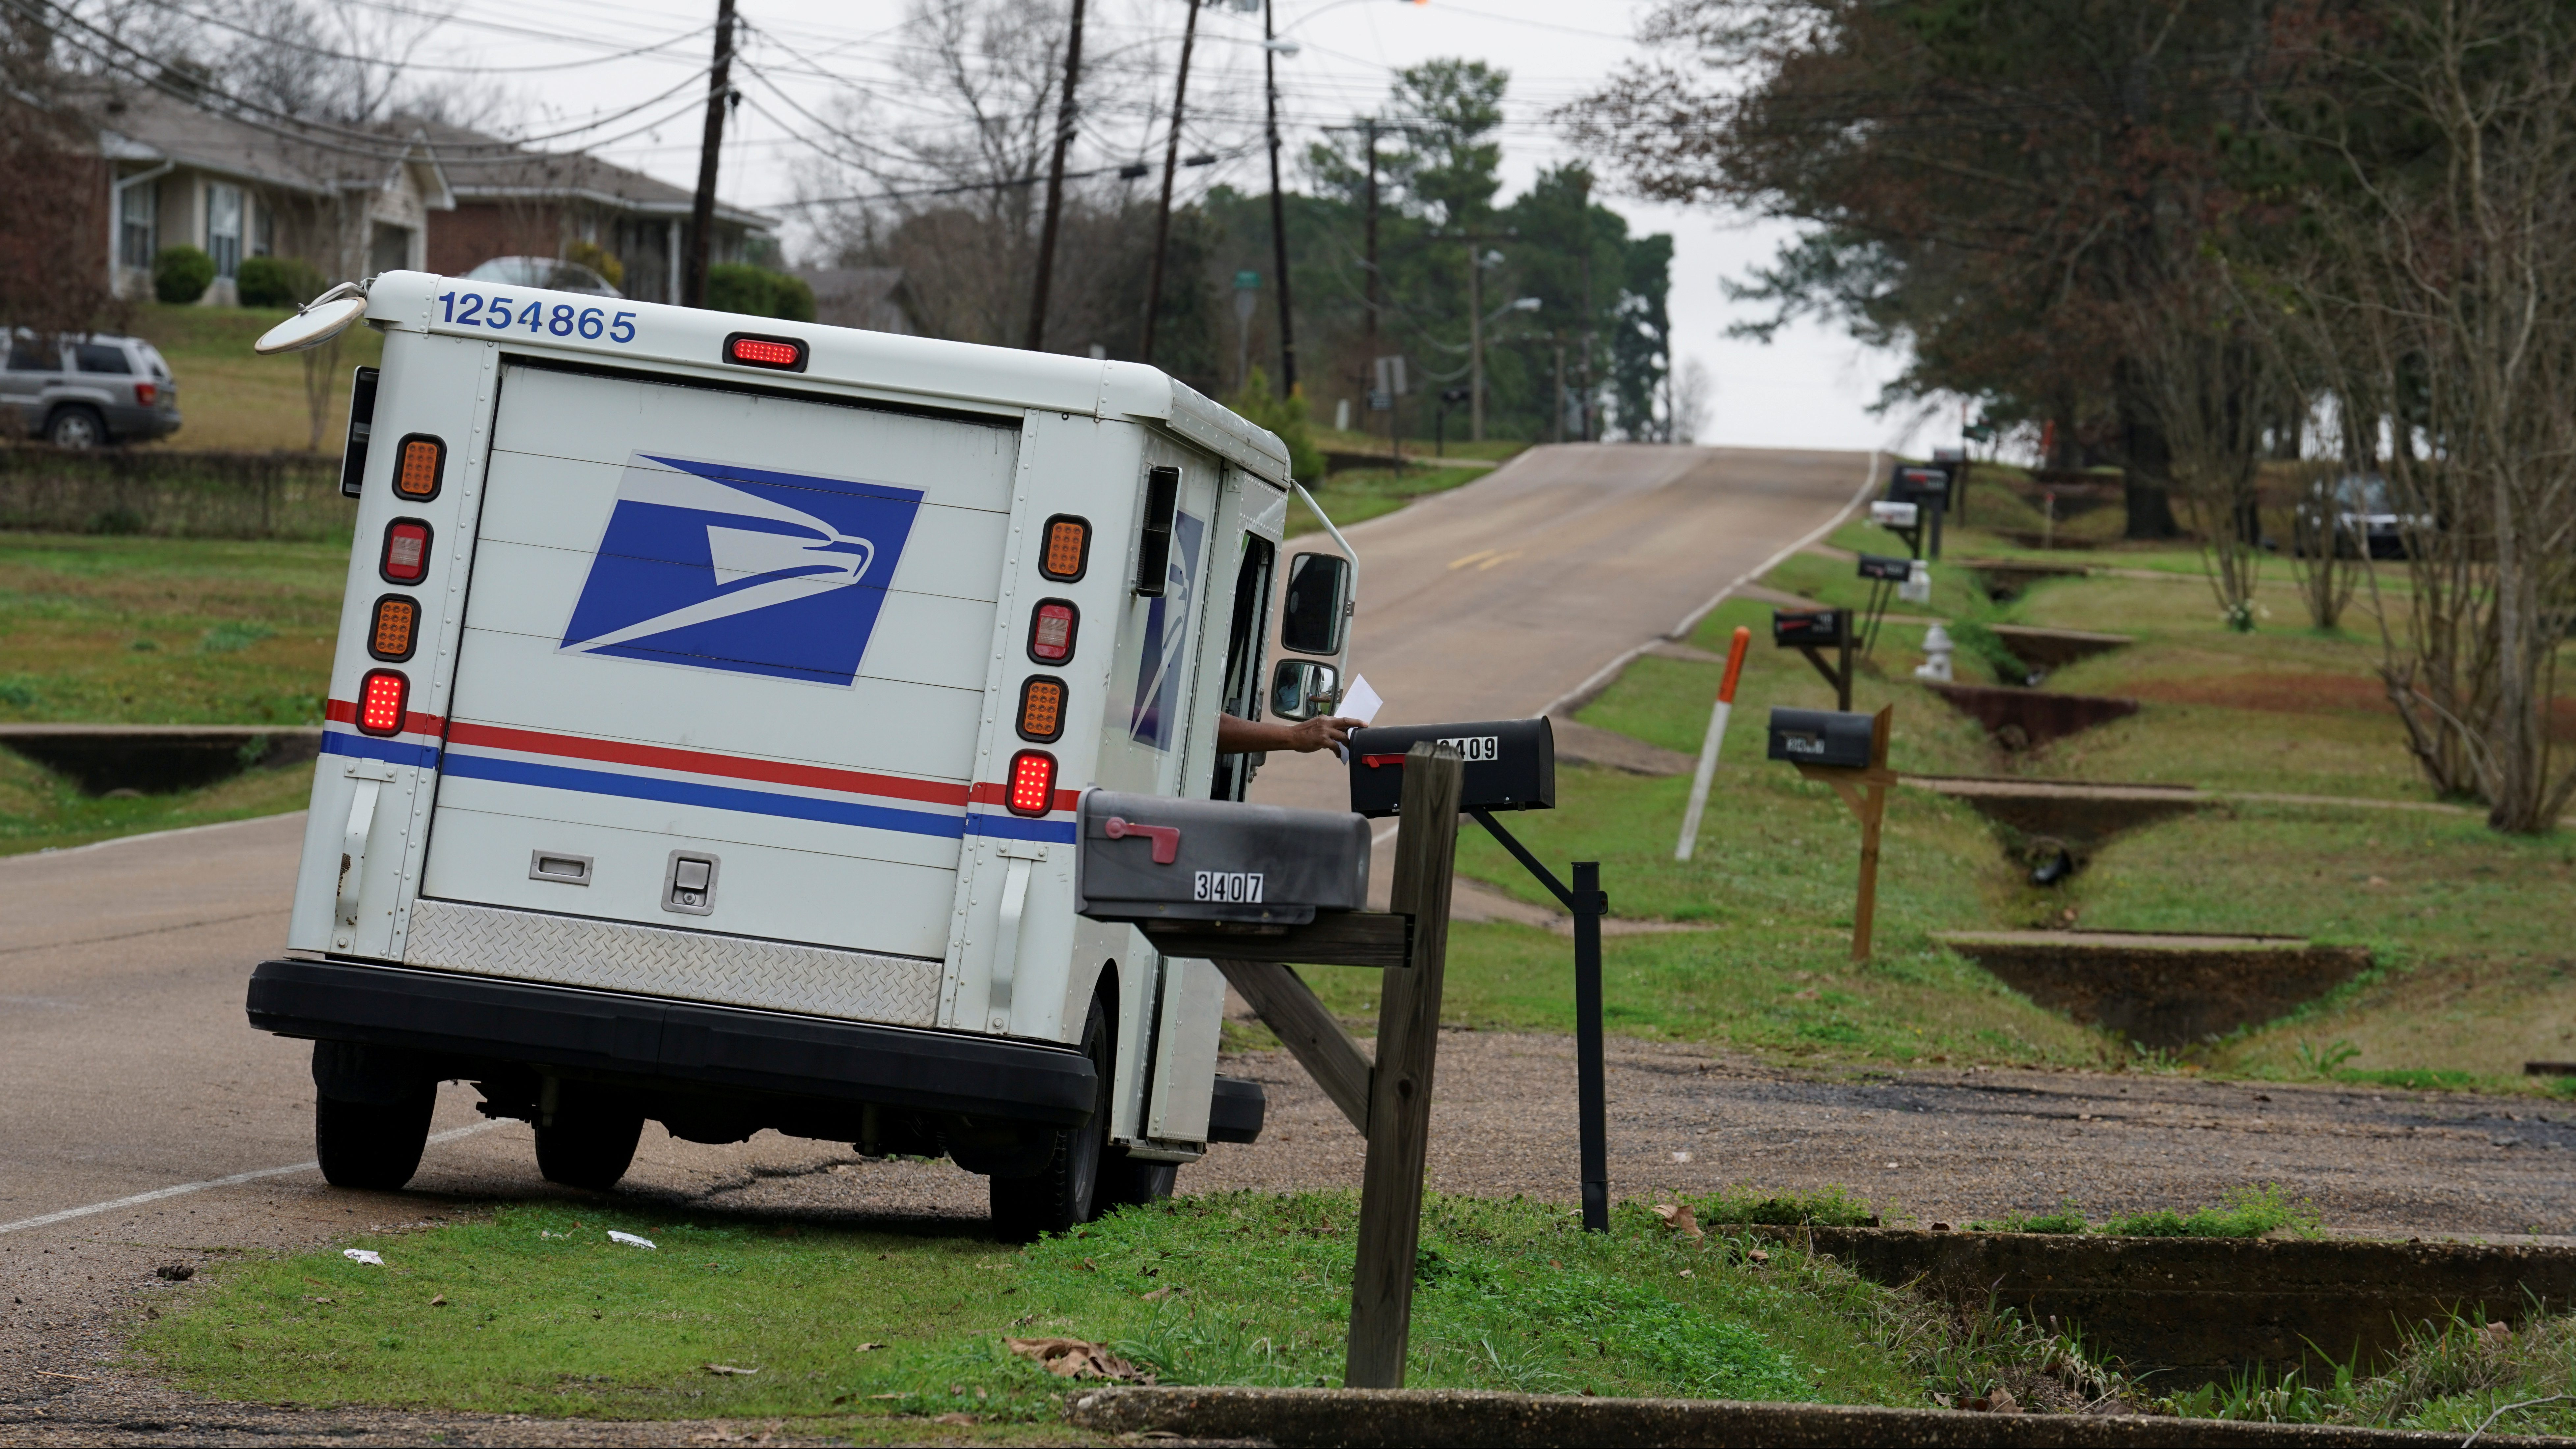 A mail carrier delivers the mail in Pearl, Mississippi, U.S. January 15, 2020. Picture taken January 15, 2020.